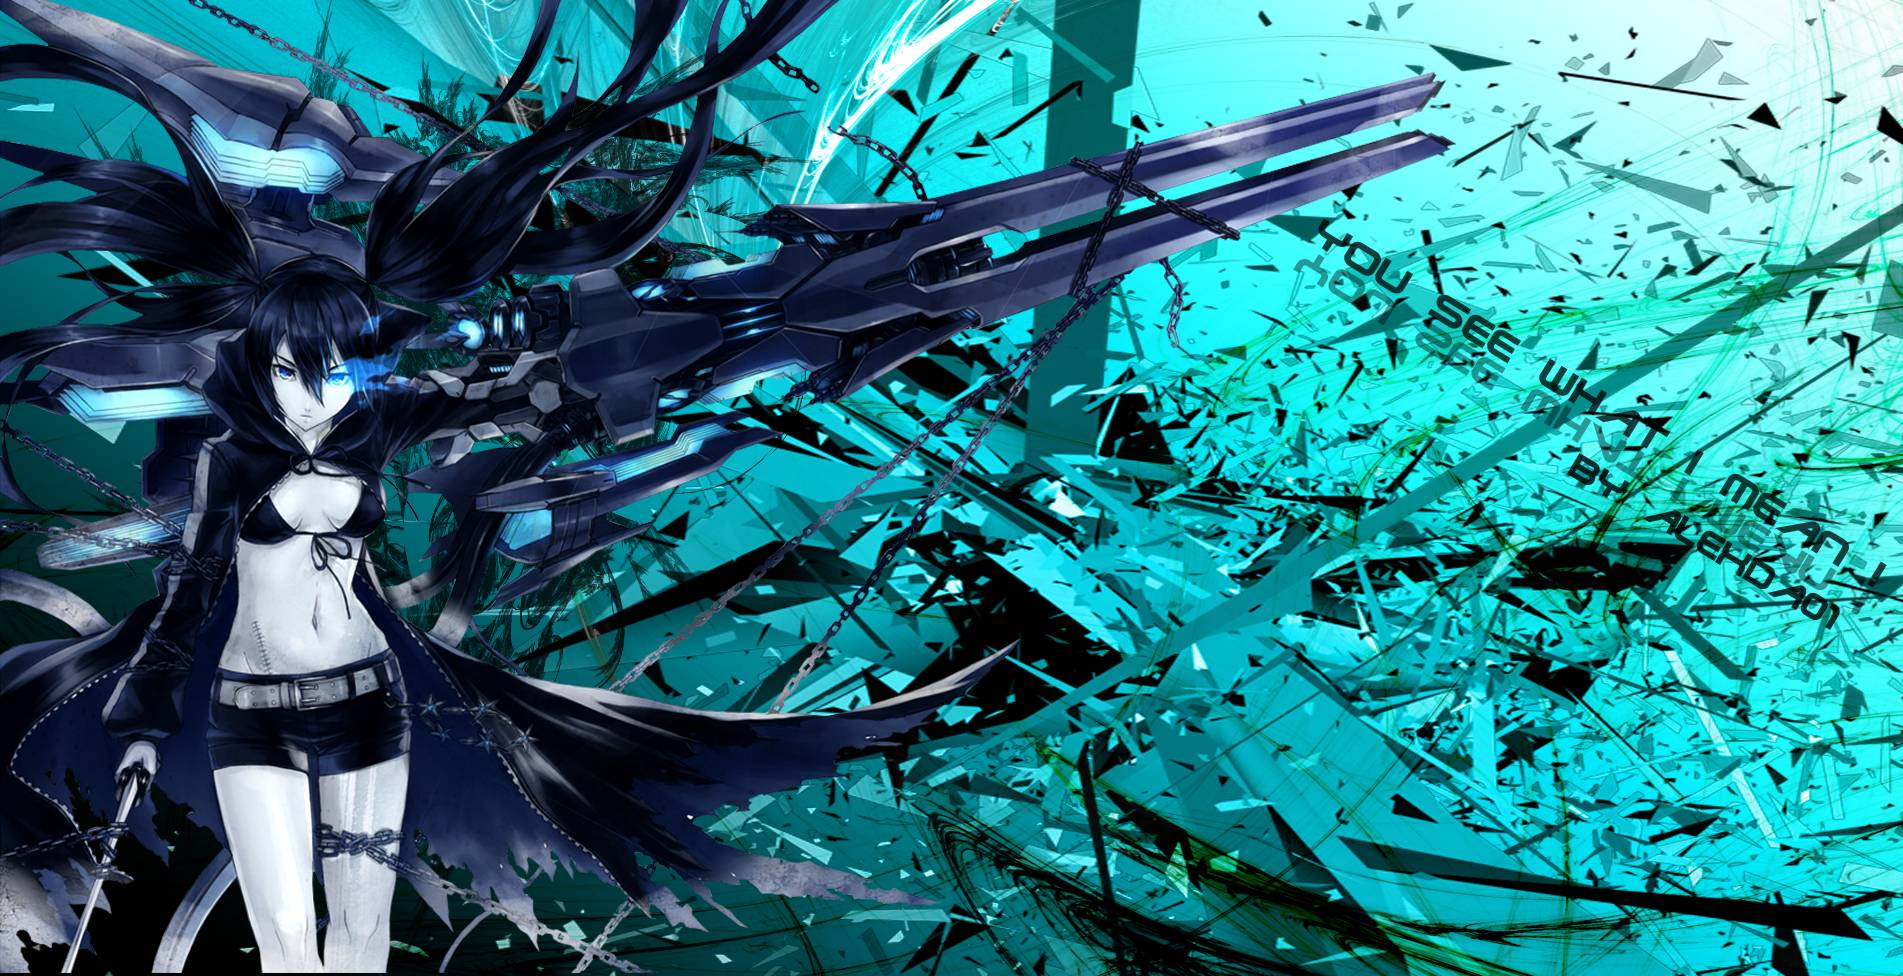 Free Download Black Rock Shooter Wallpapers 1903x976 For Your